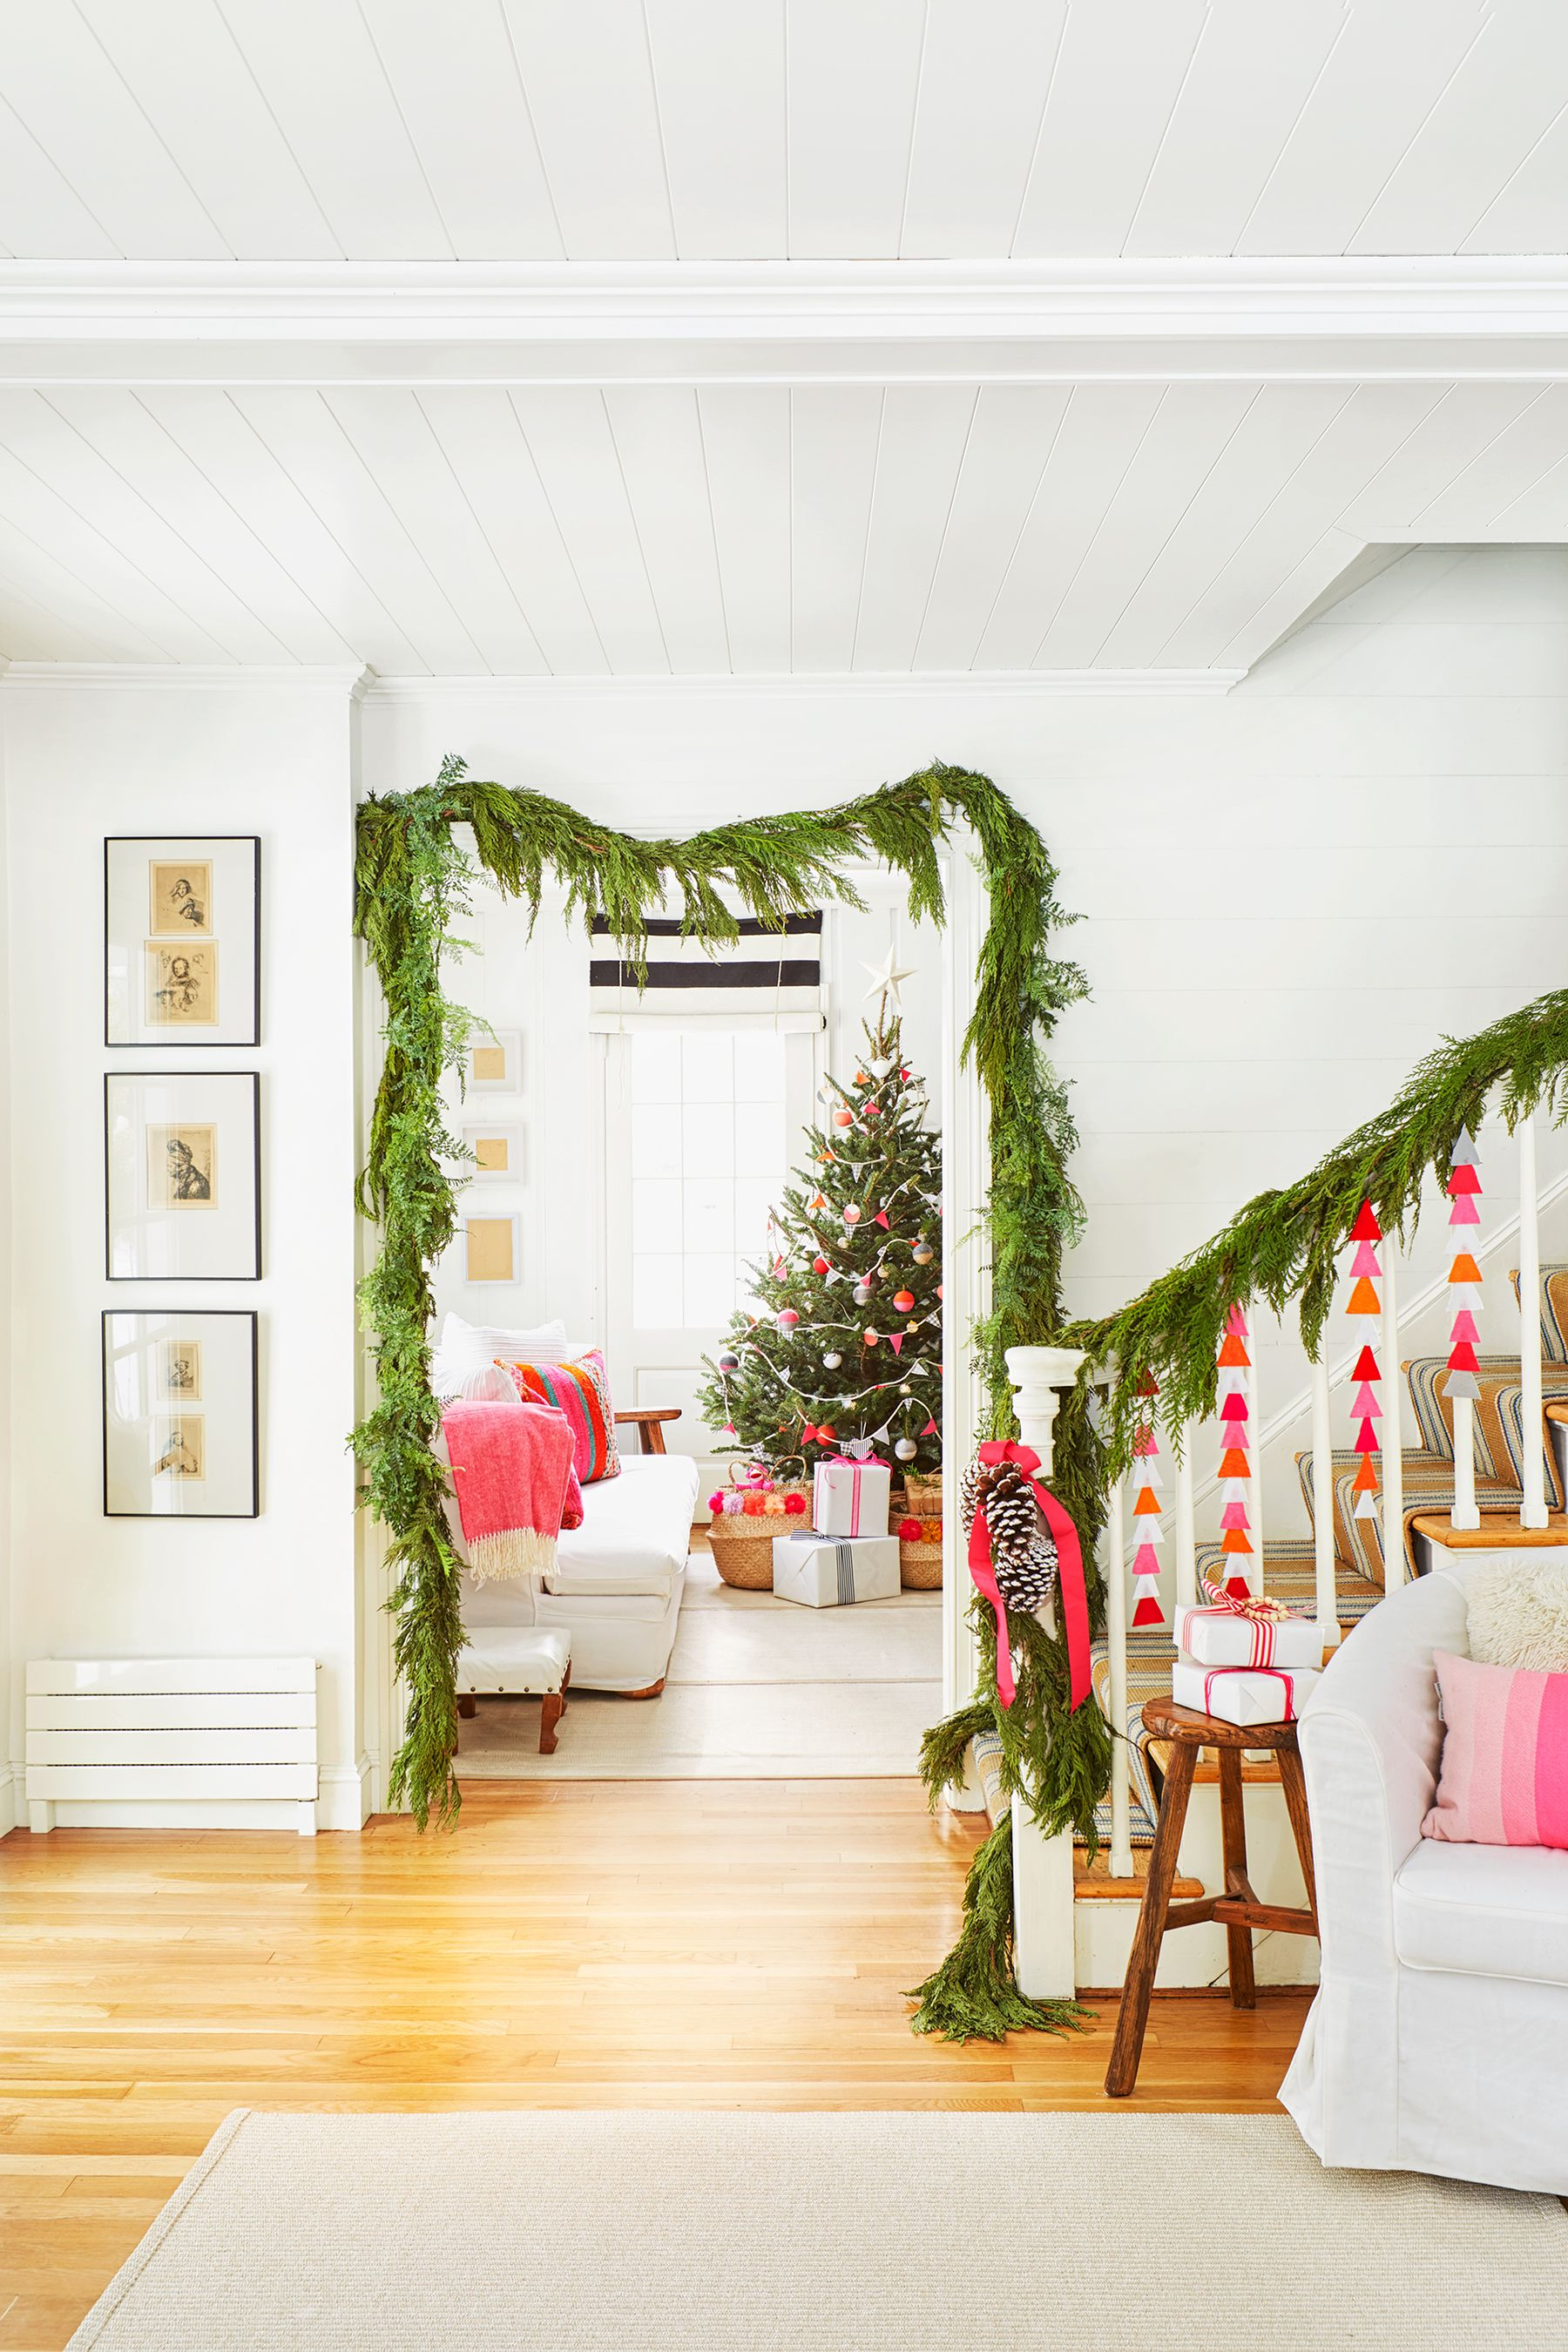 30 Easy Diy Christmas Decorations Homemade Holiday Decor Ideas